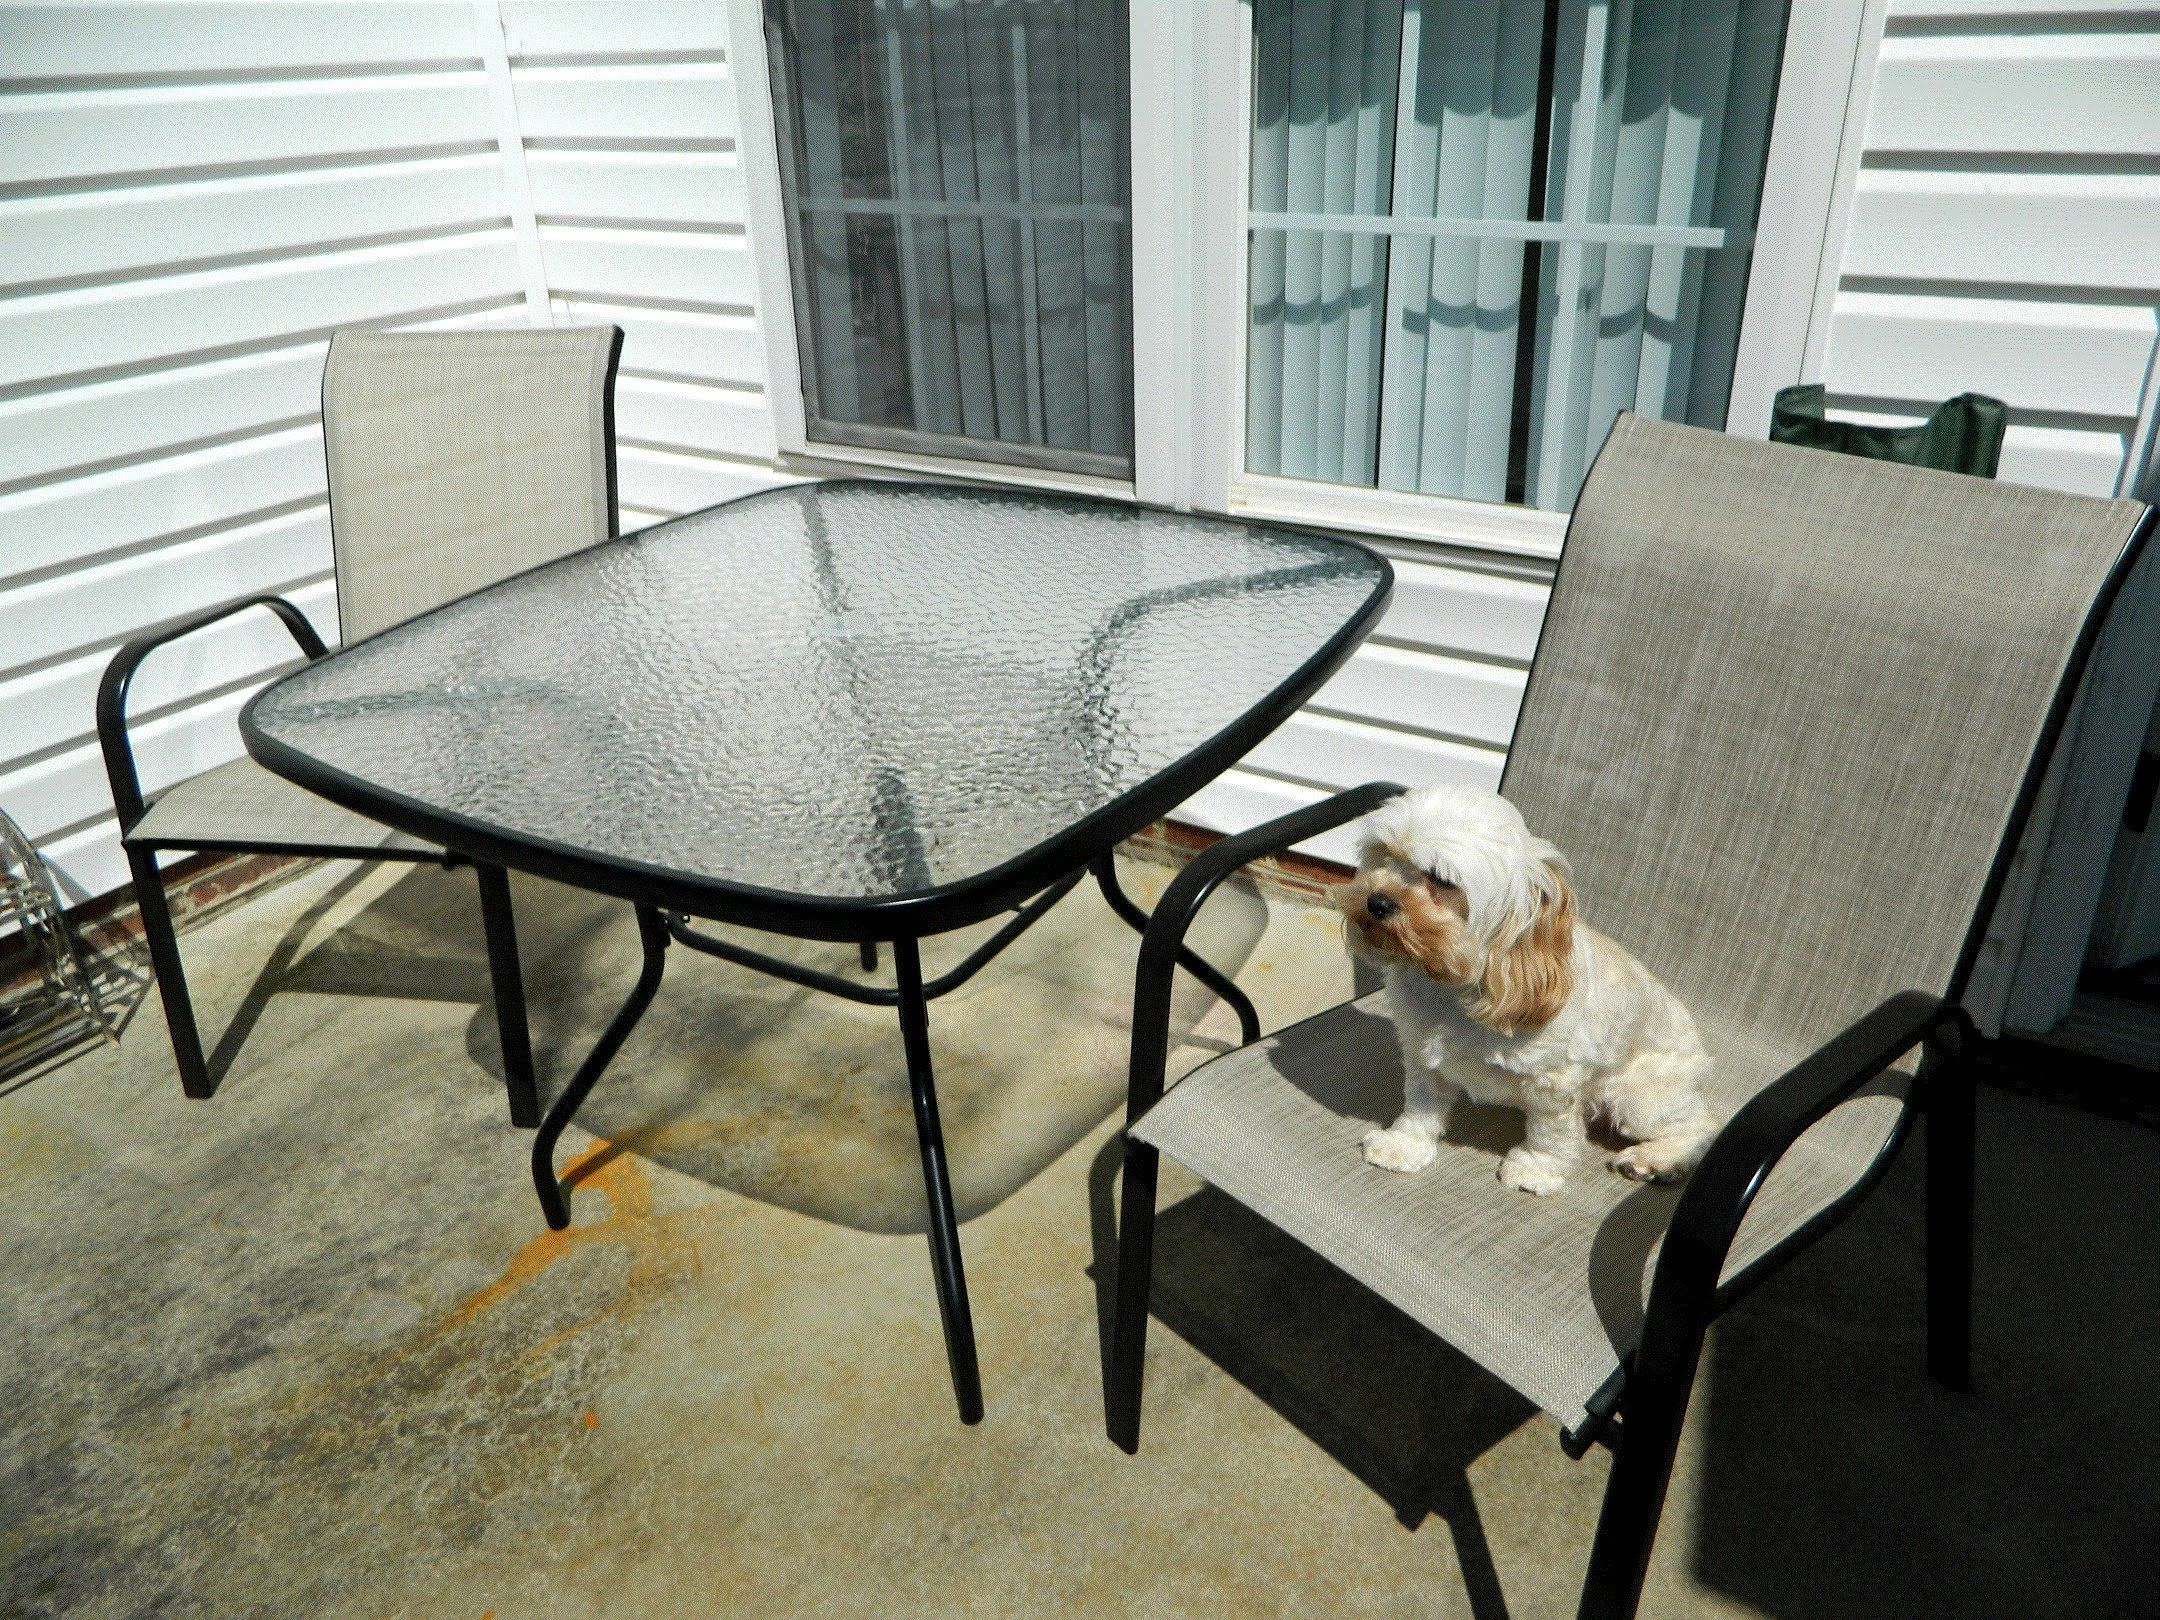 Patio Furniture at CVS Retail $109 97 Clearance Price $27 49